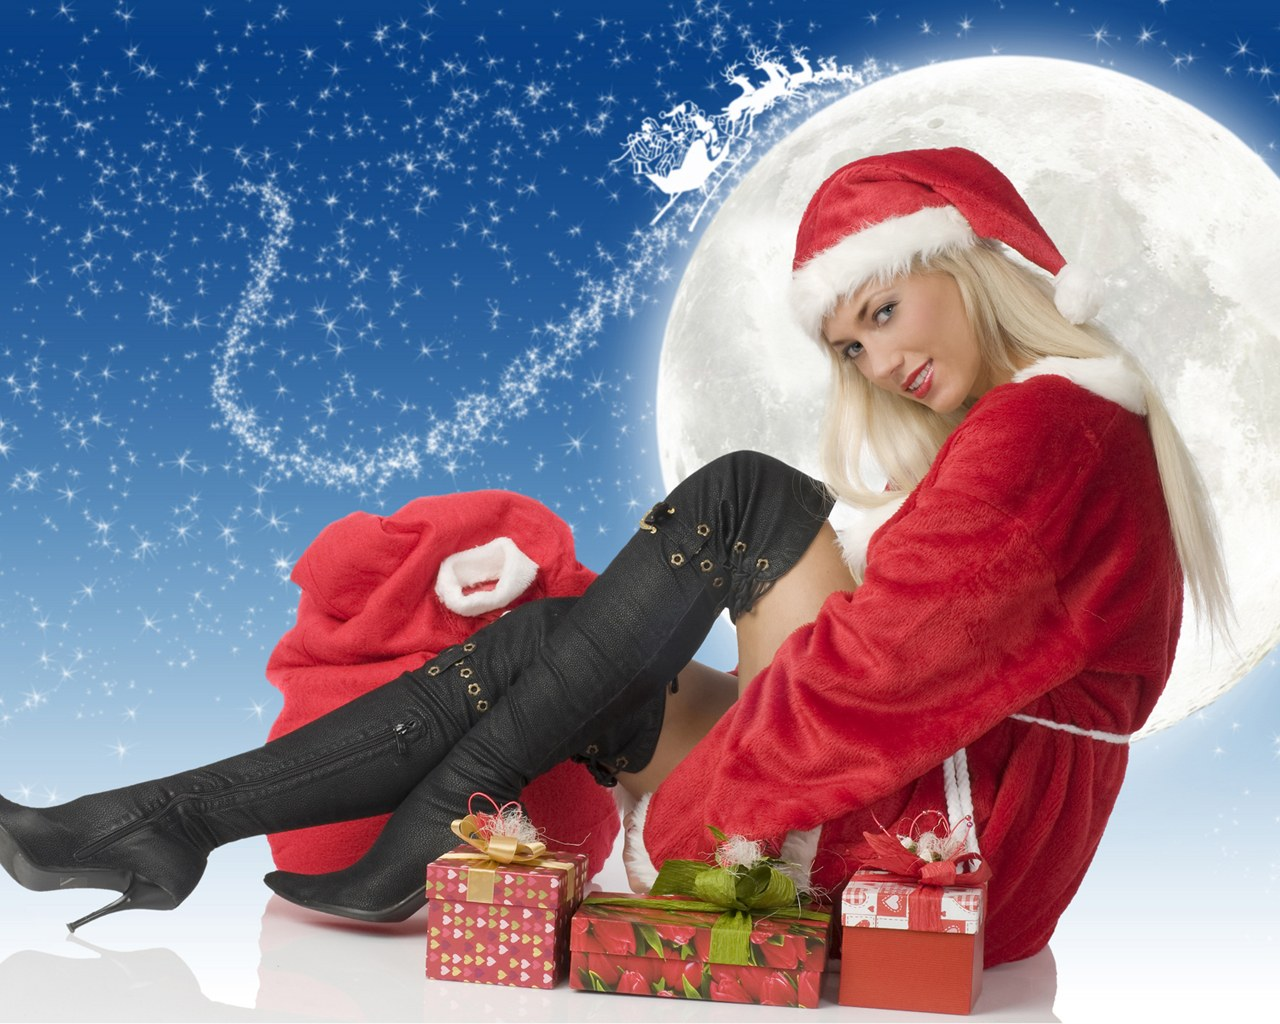 Remarkable Hot girls in naughty santa outfits what